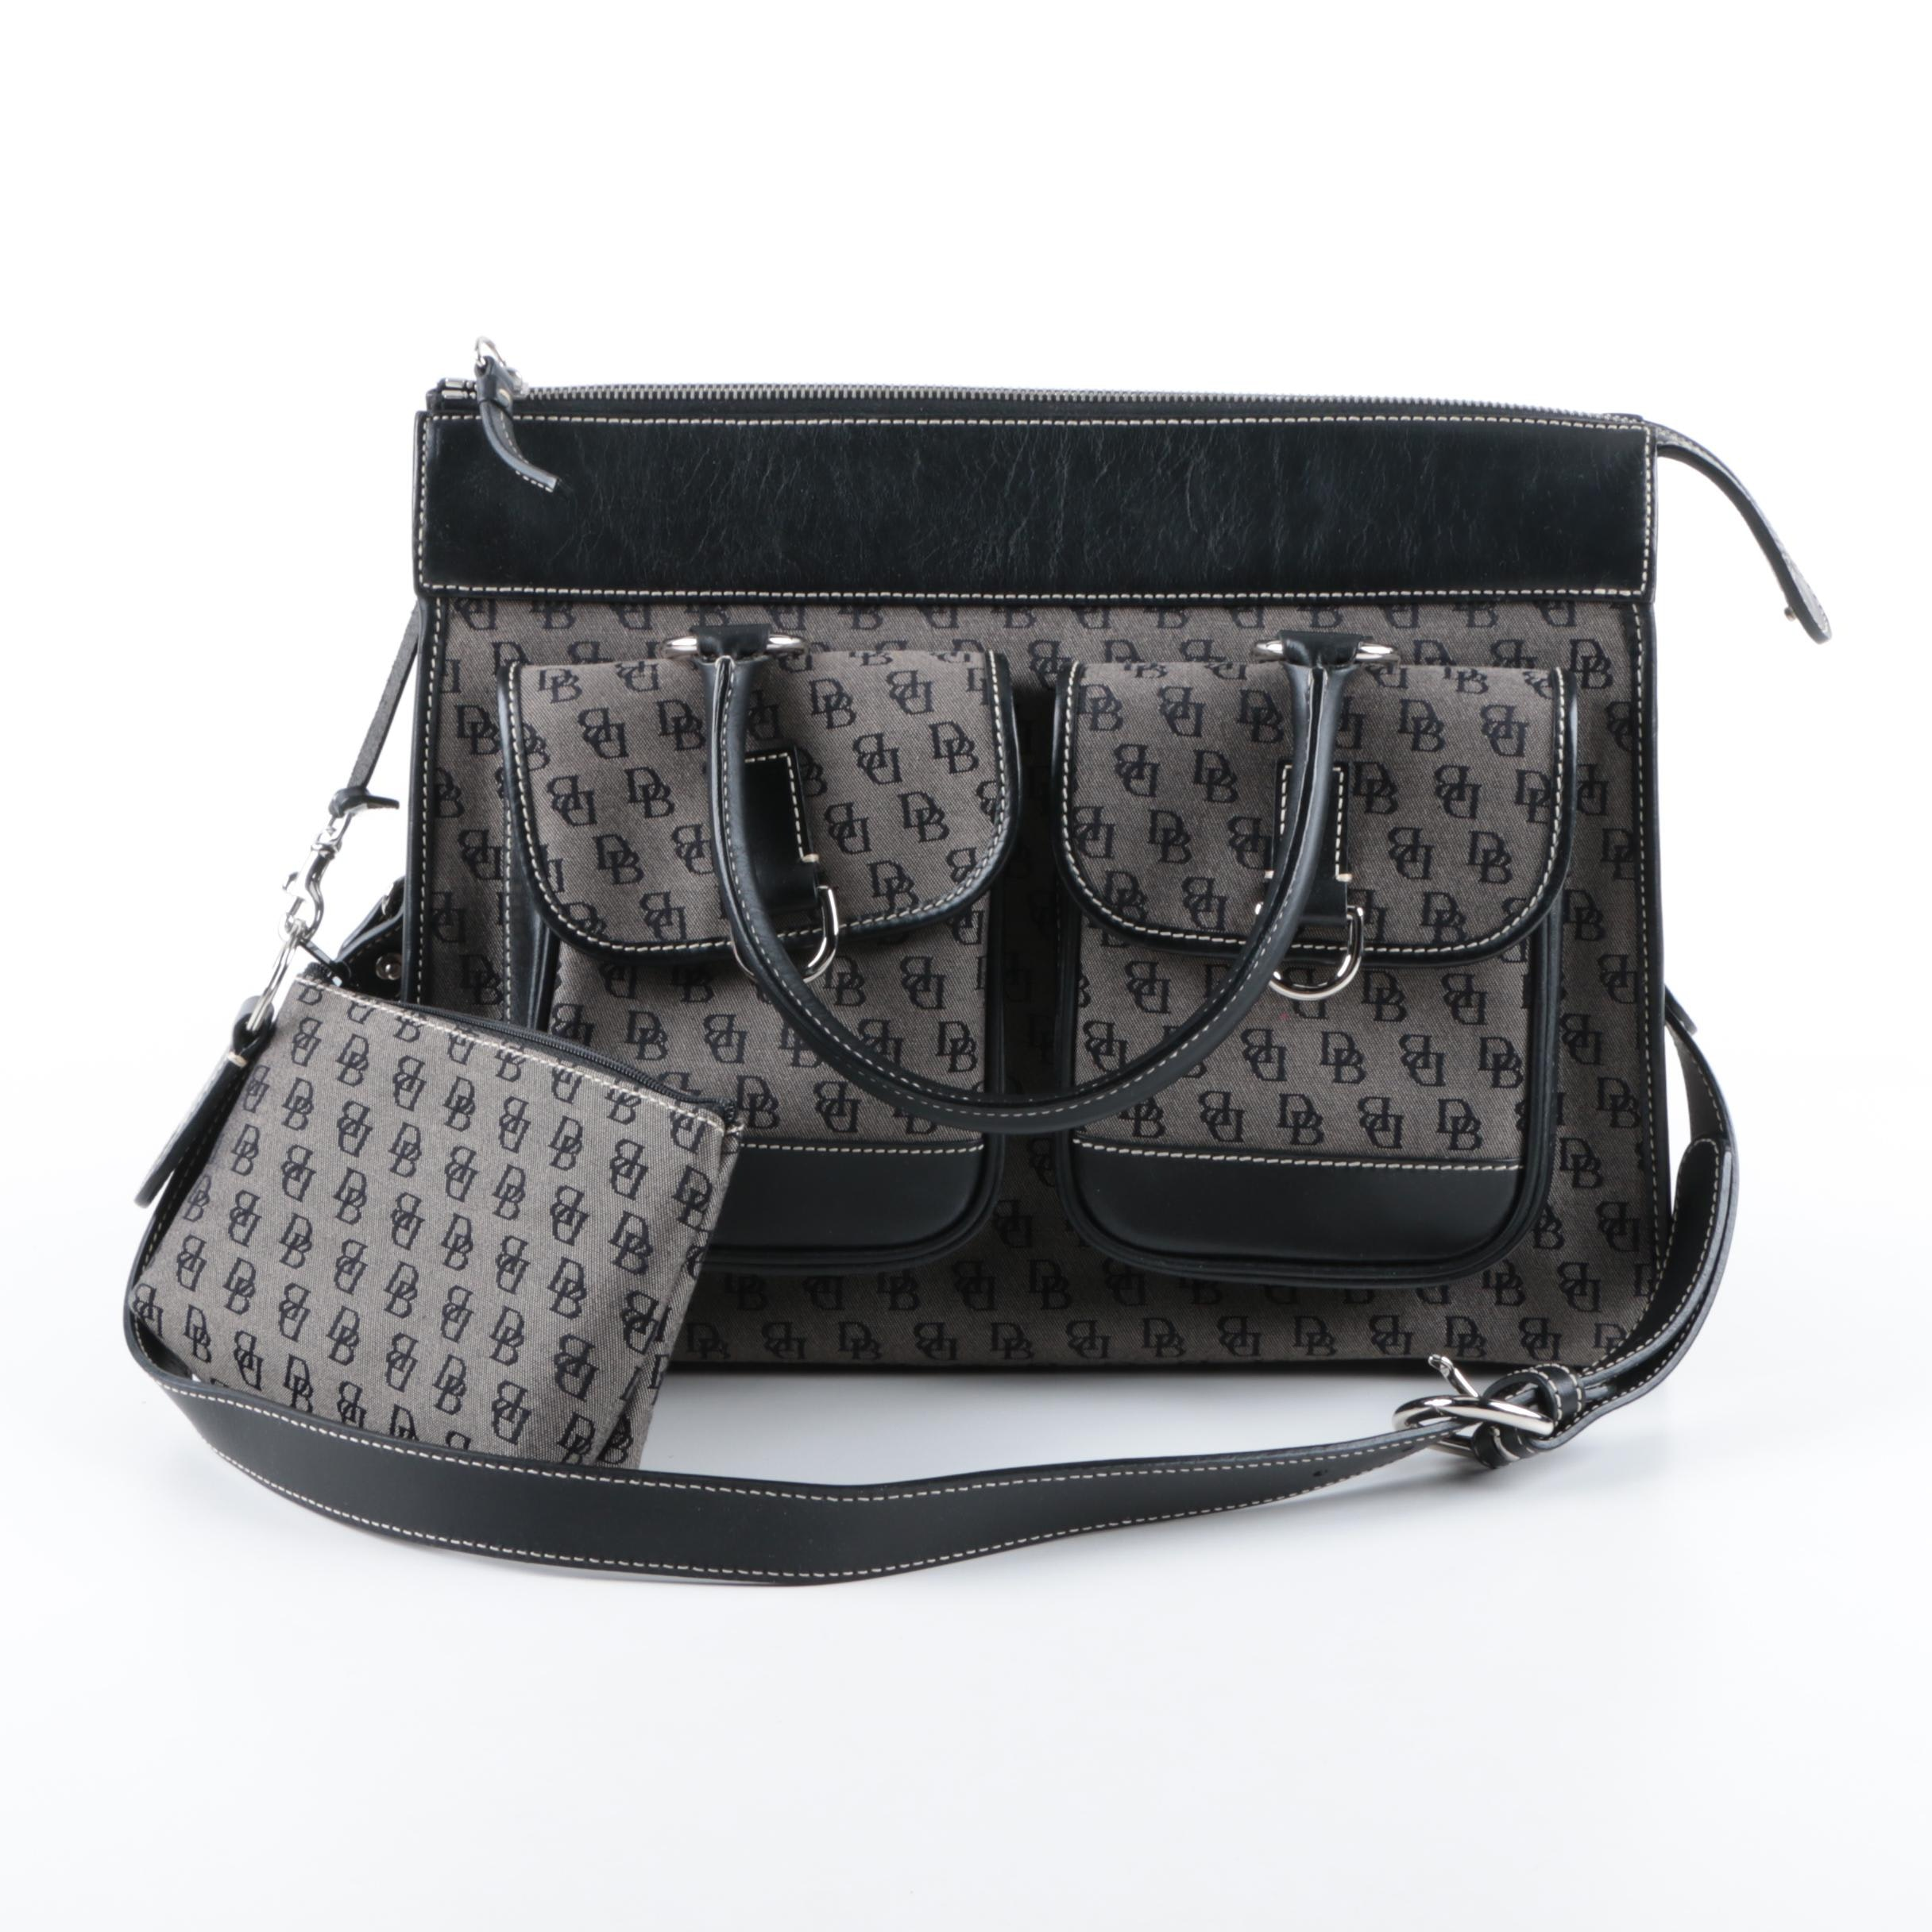 Dooney & Bourke Signature Canvas and Black Leather Double Pocket Tote